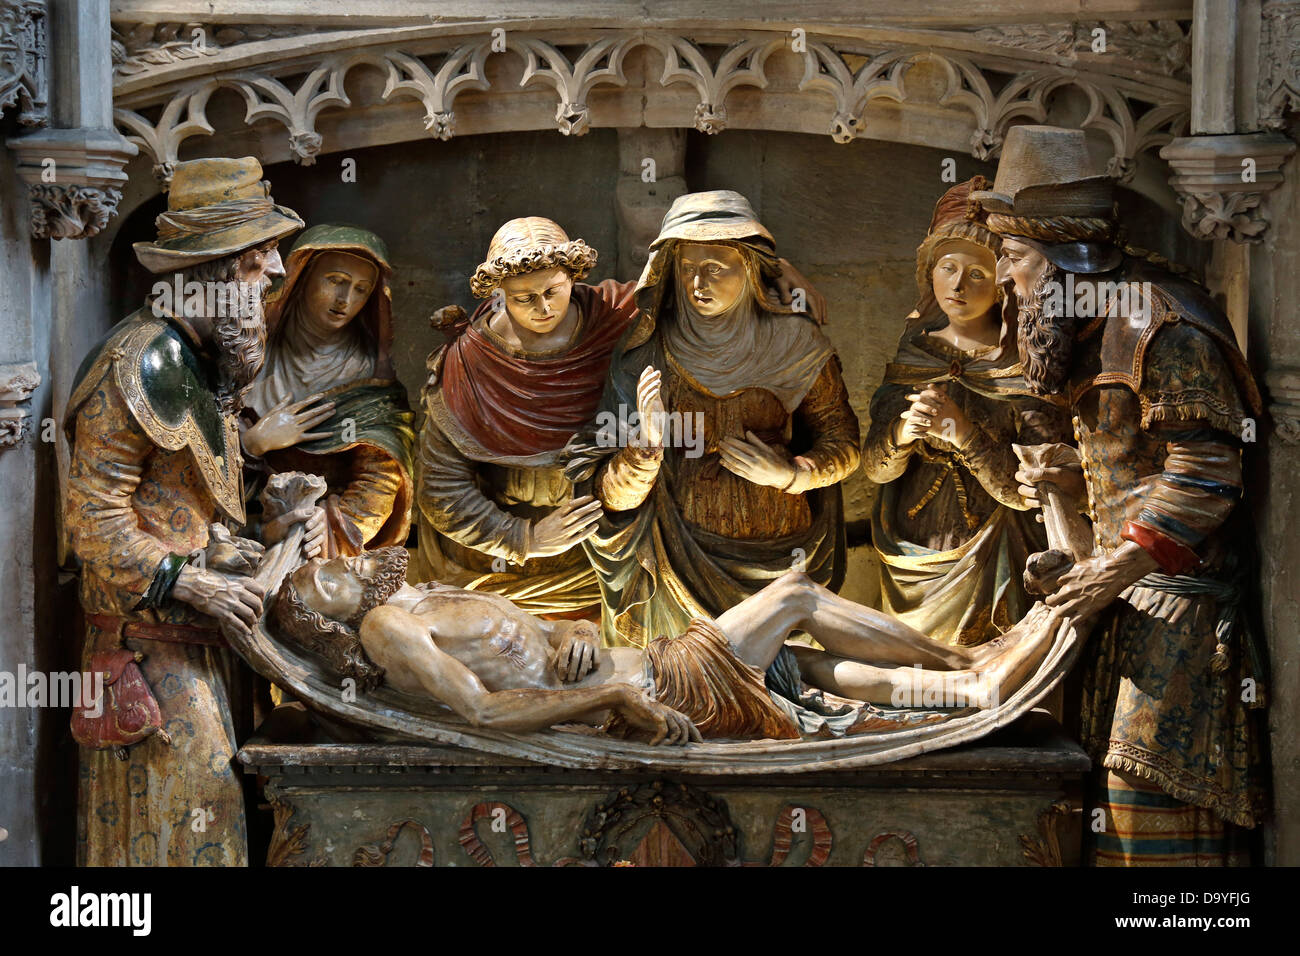 Christ dead in the arms of Virgin Mary, Sculpture group in the cathedral Notre Dame la Grande, Poitiers, France - Stock Image